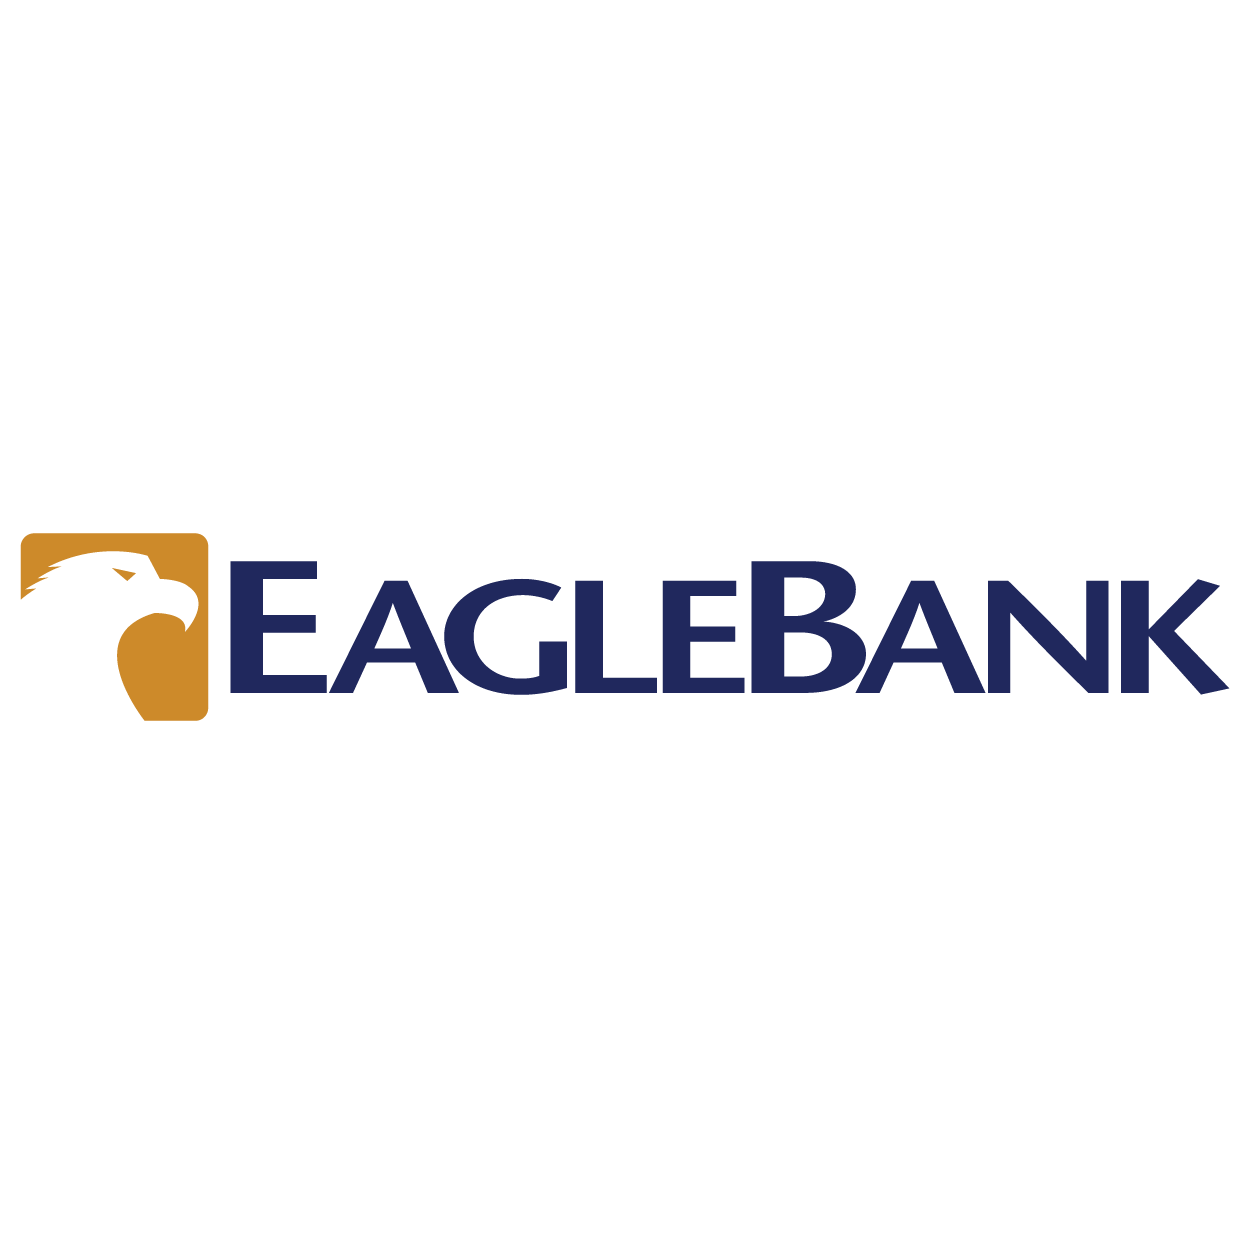 Eagle Bank-01.png